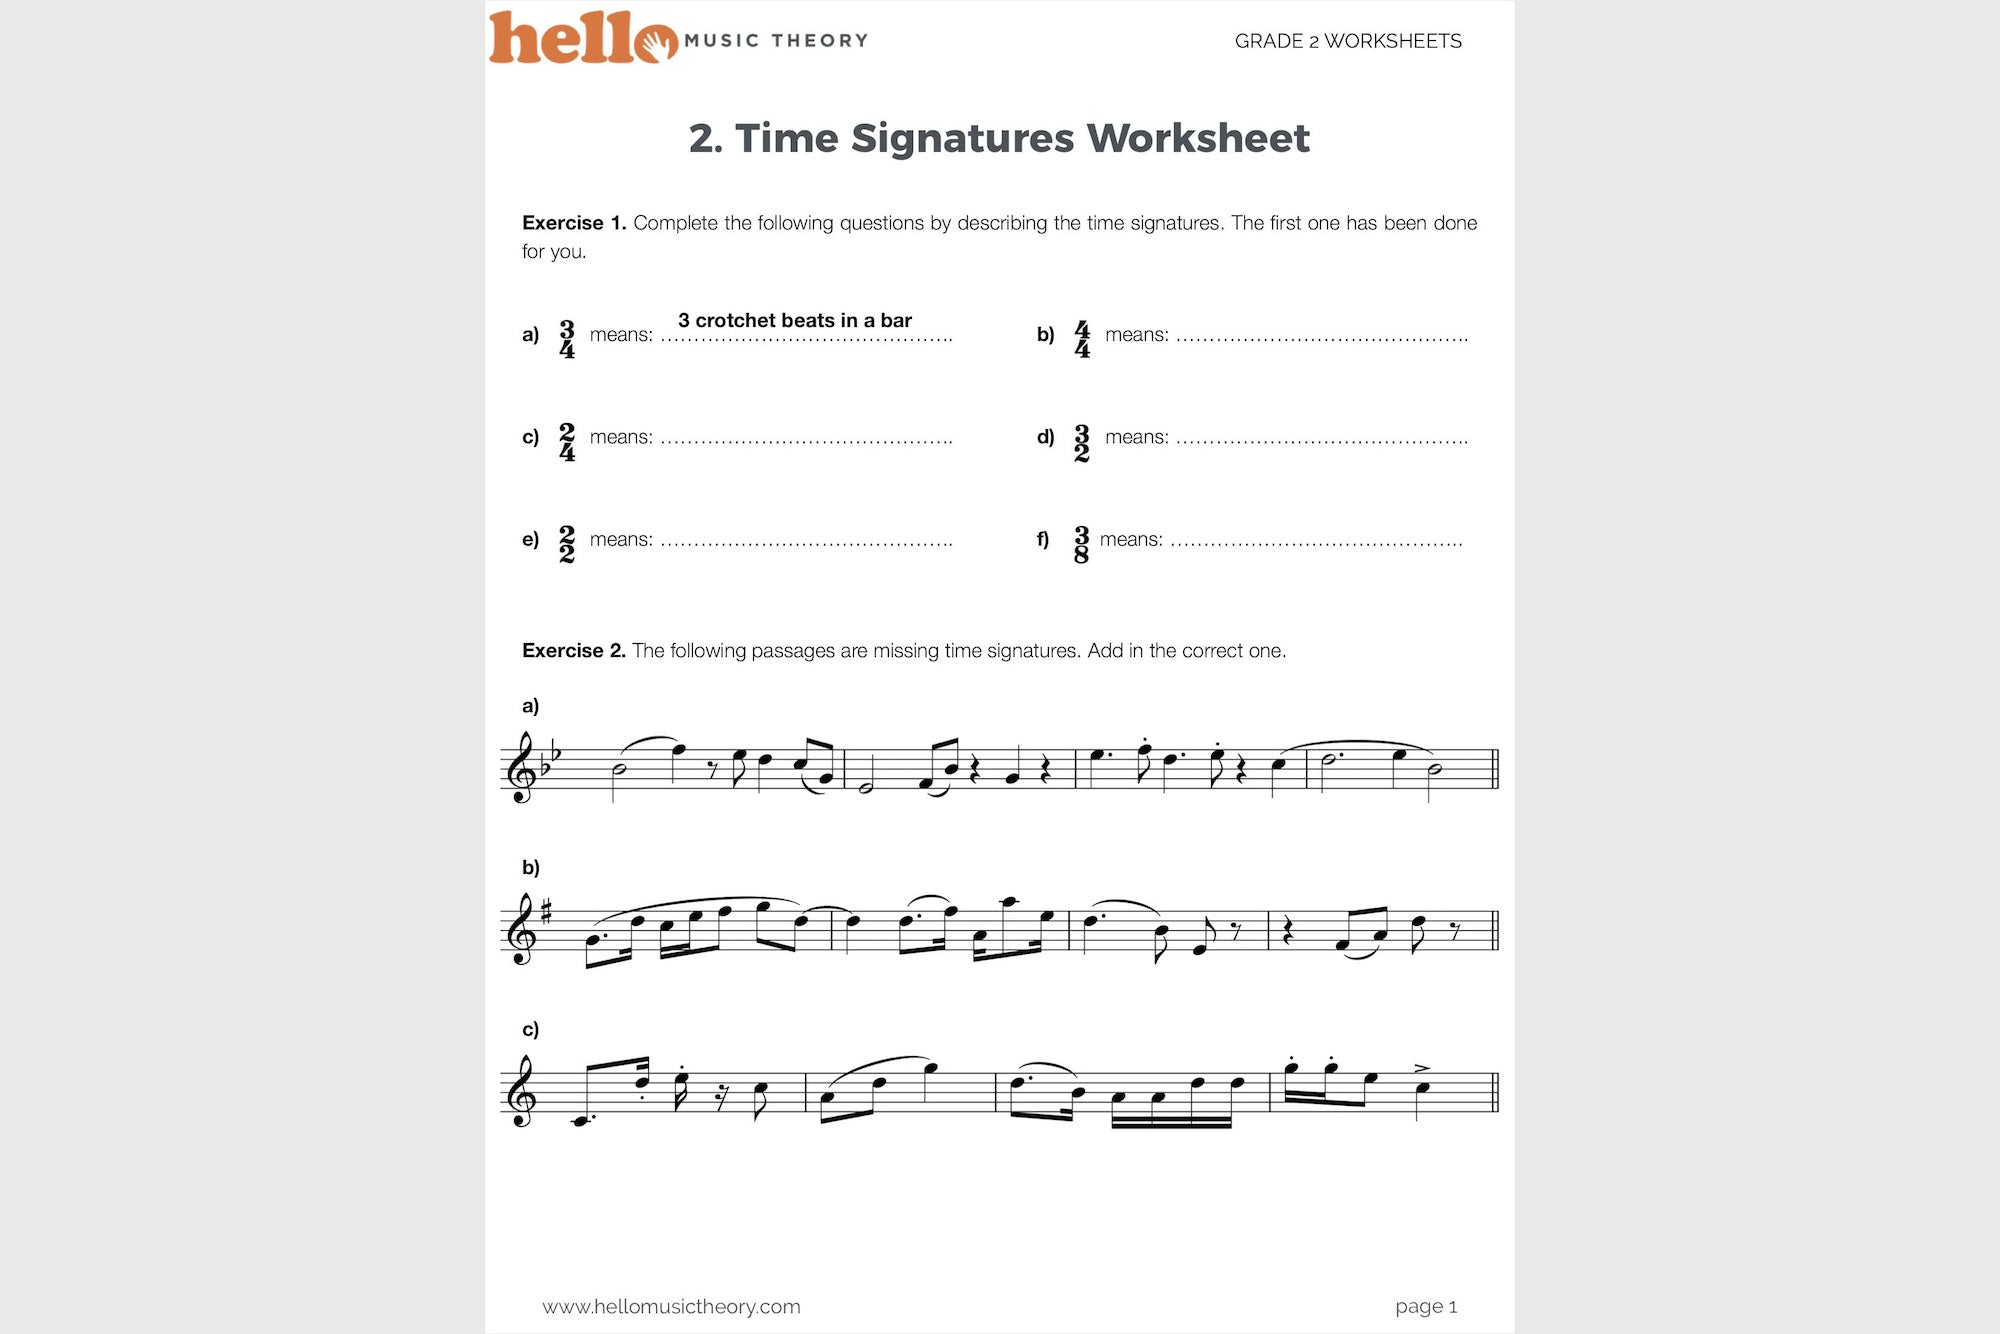 Worksheets Time Signature Worksheet grade 2 music theory worksheets hello pack